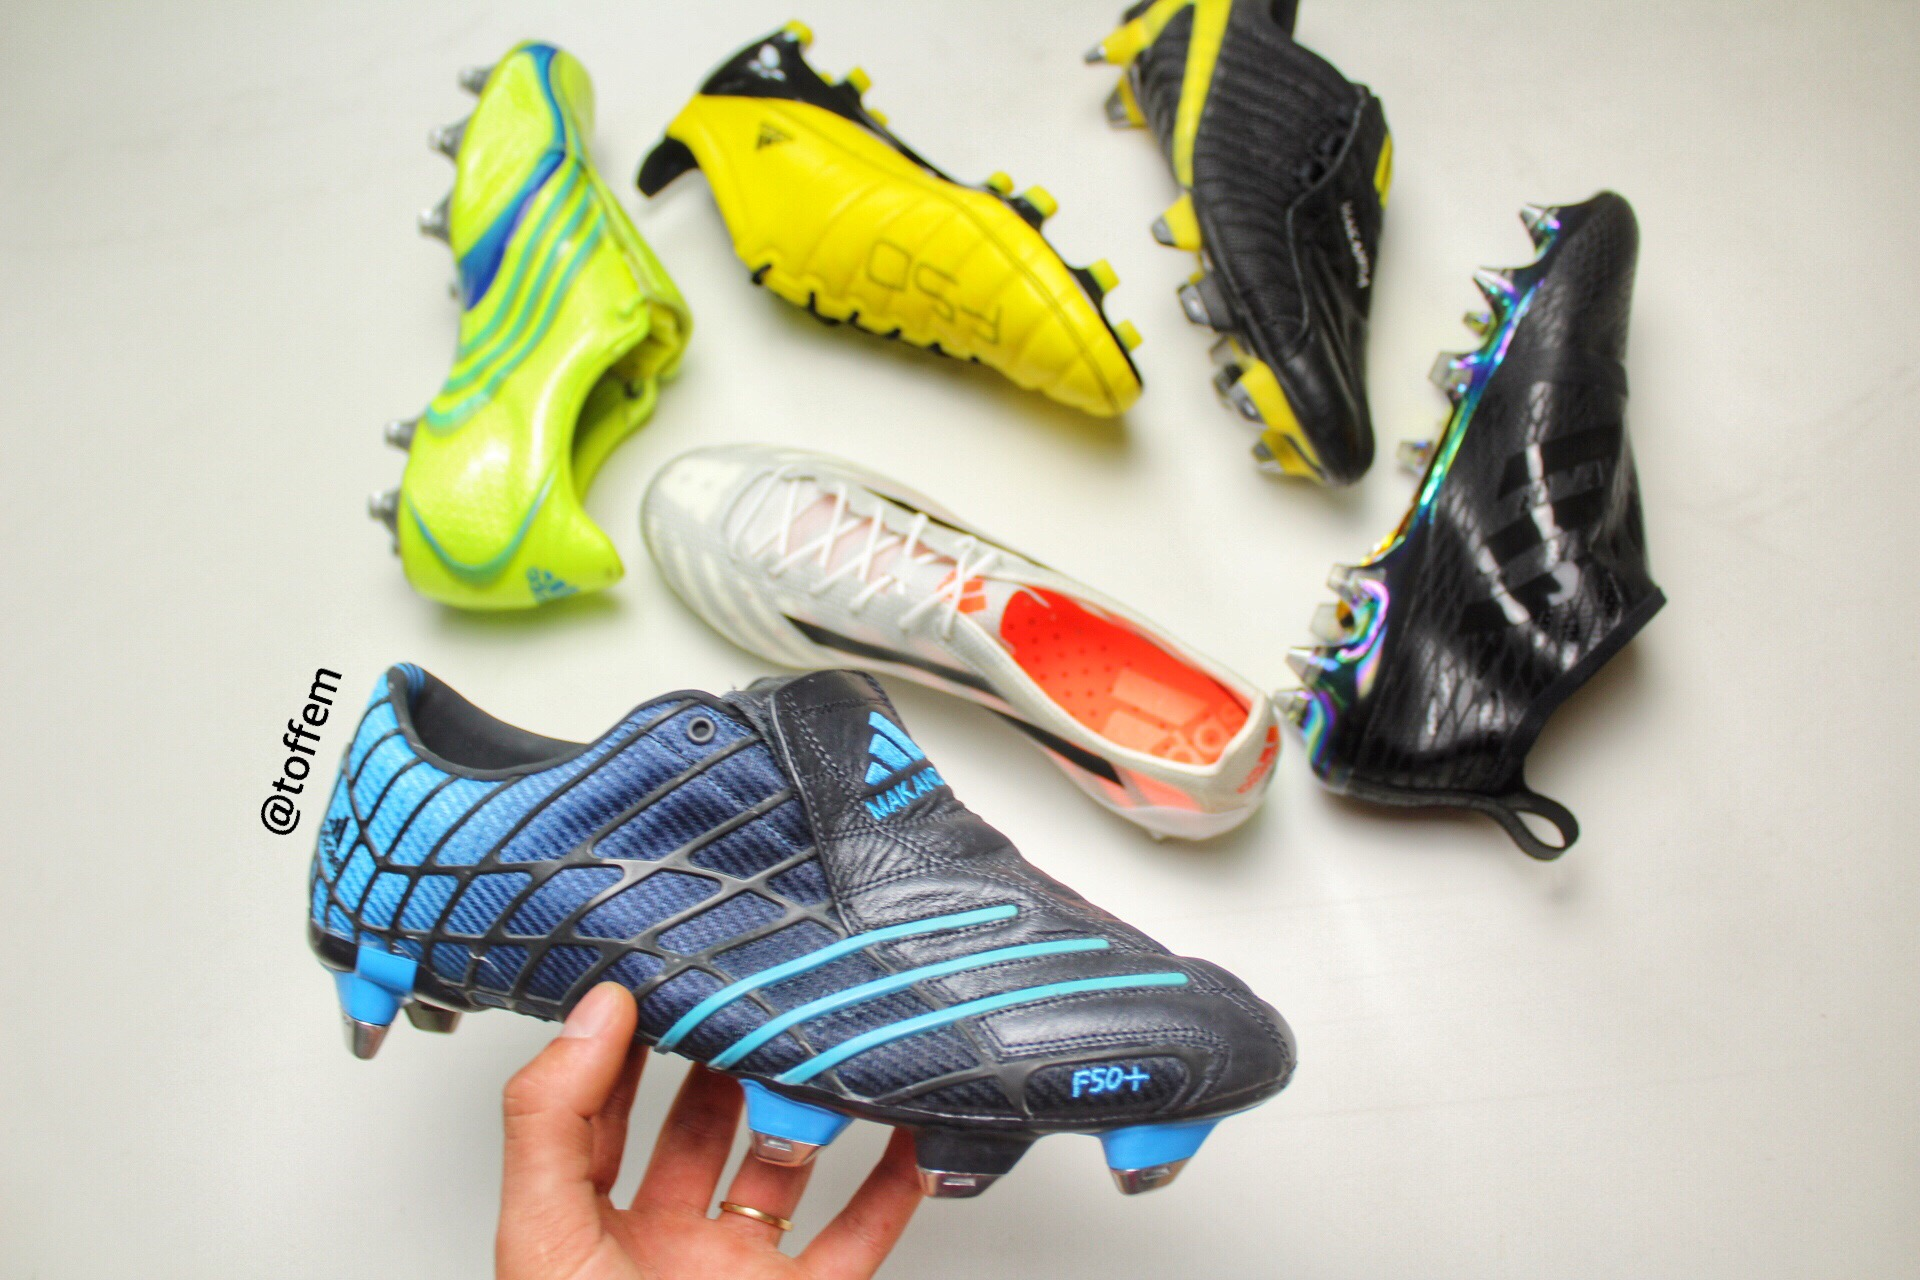 92efc245b In 2004 Adidas released the second generation of the F50 range for the  European Championship